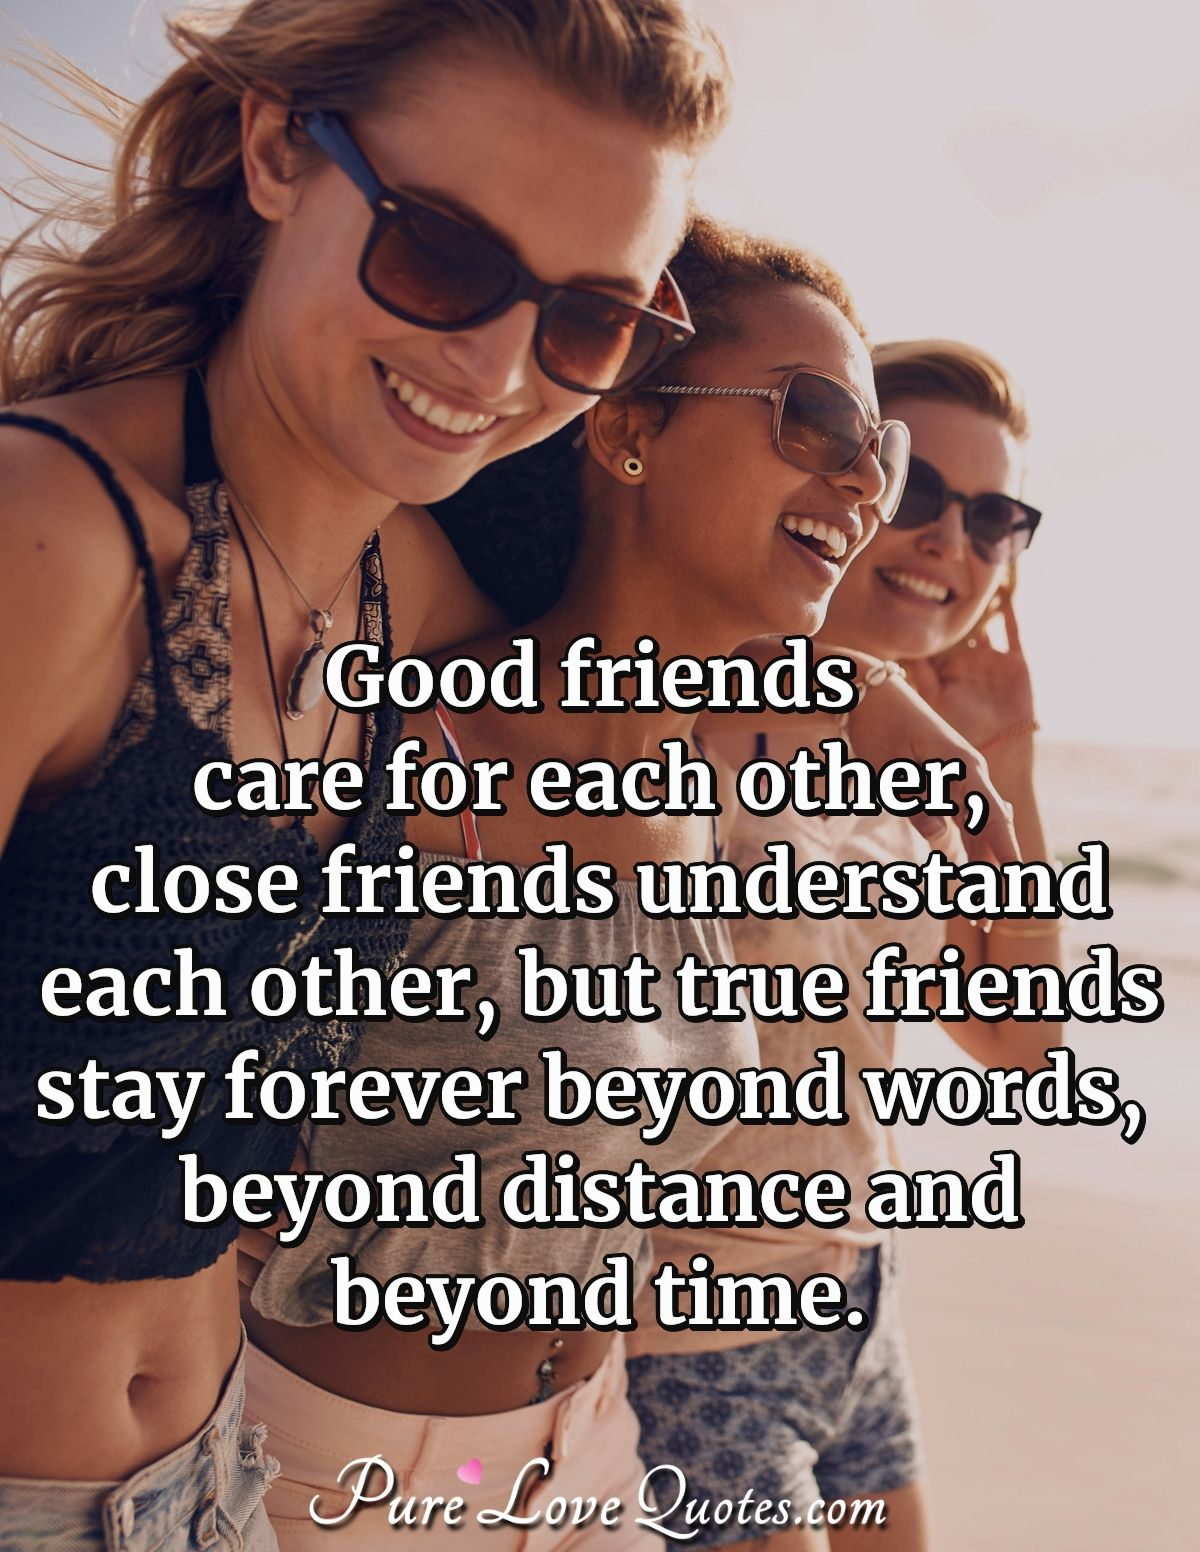 Good friends care for each other, close friends understand each other, but true friends stay forever beyond words, beyond distance and beyond time. - Anonymous